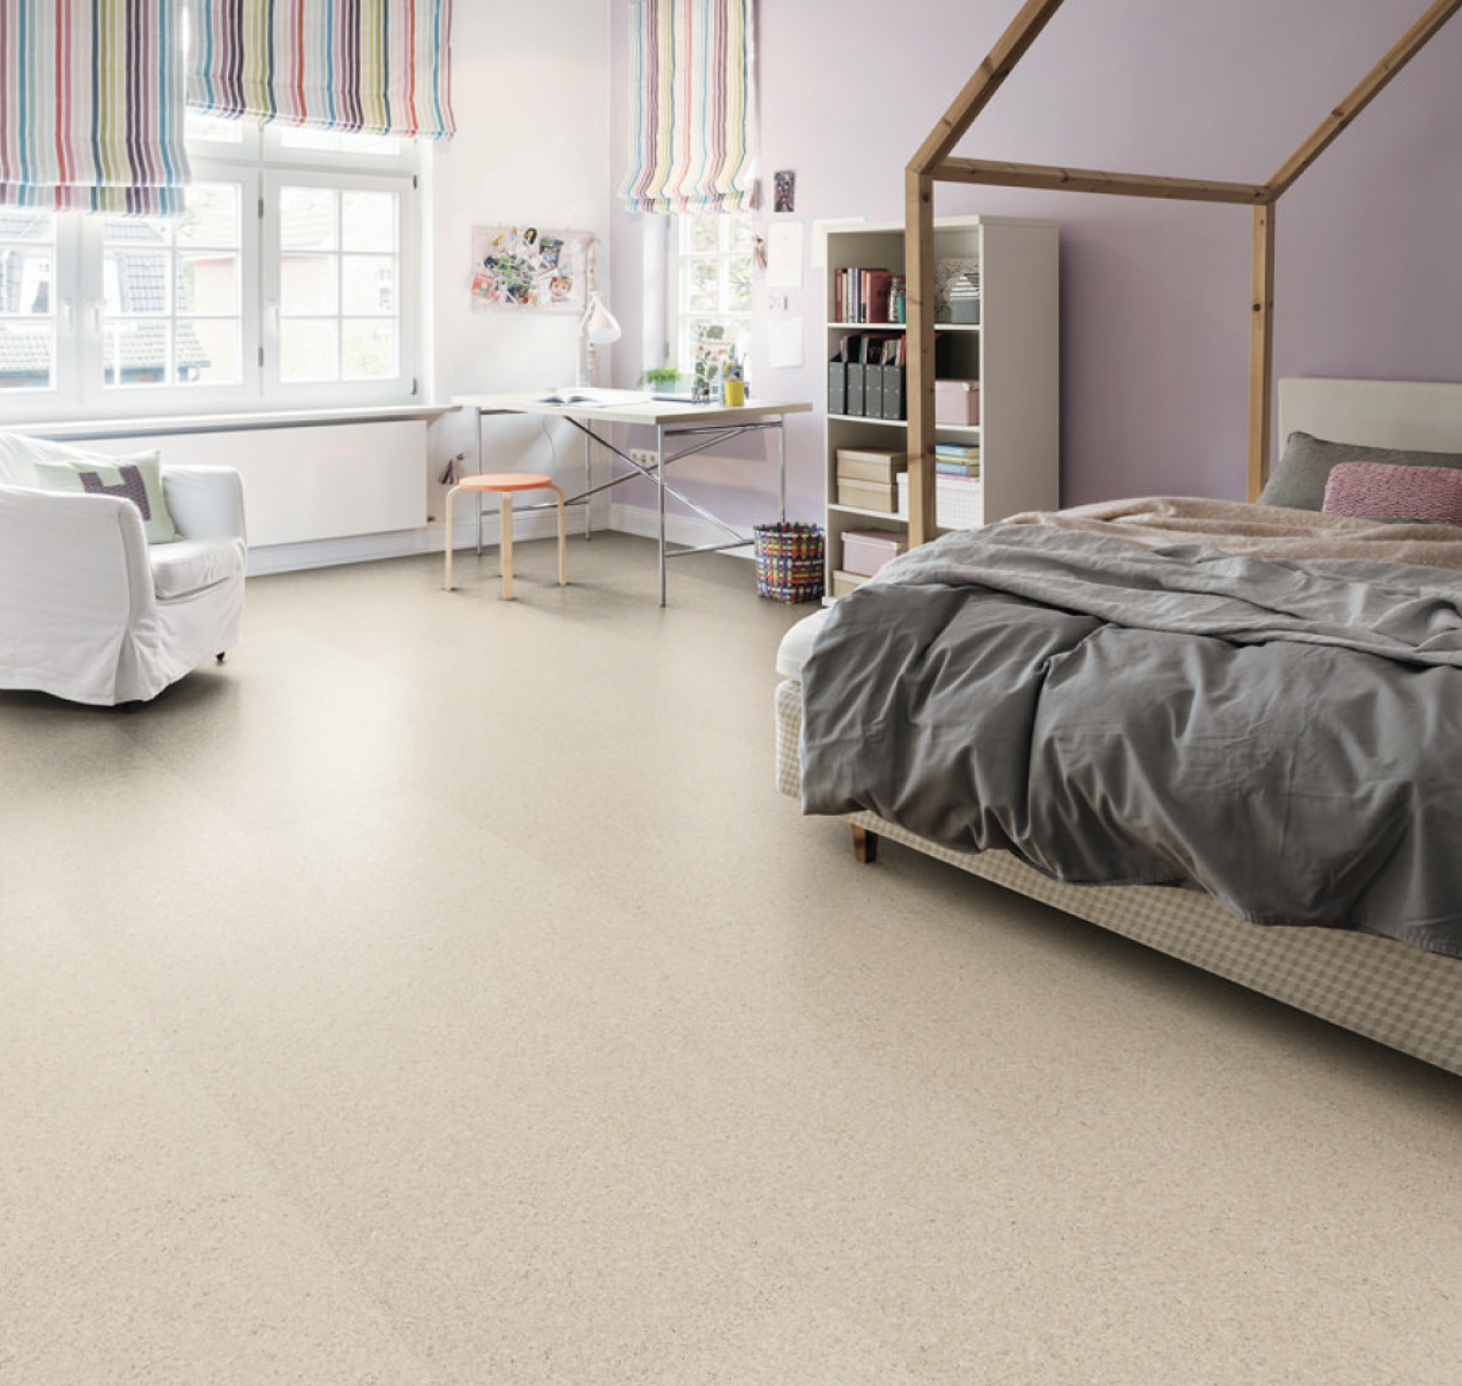 Cork floor with pale finish from Haro.com